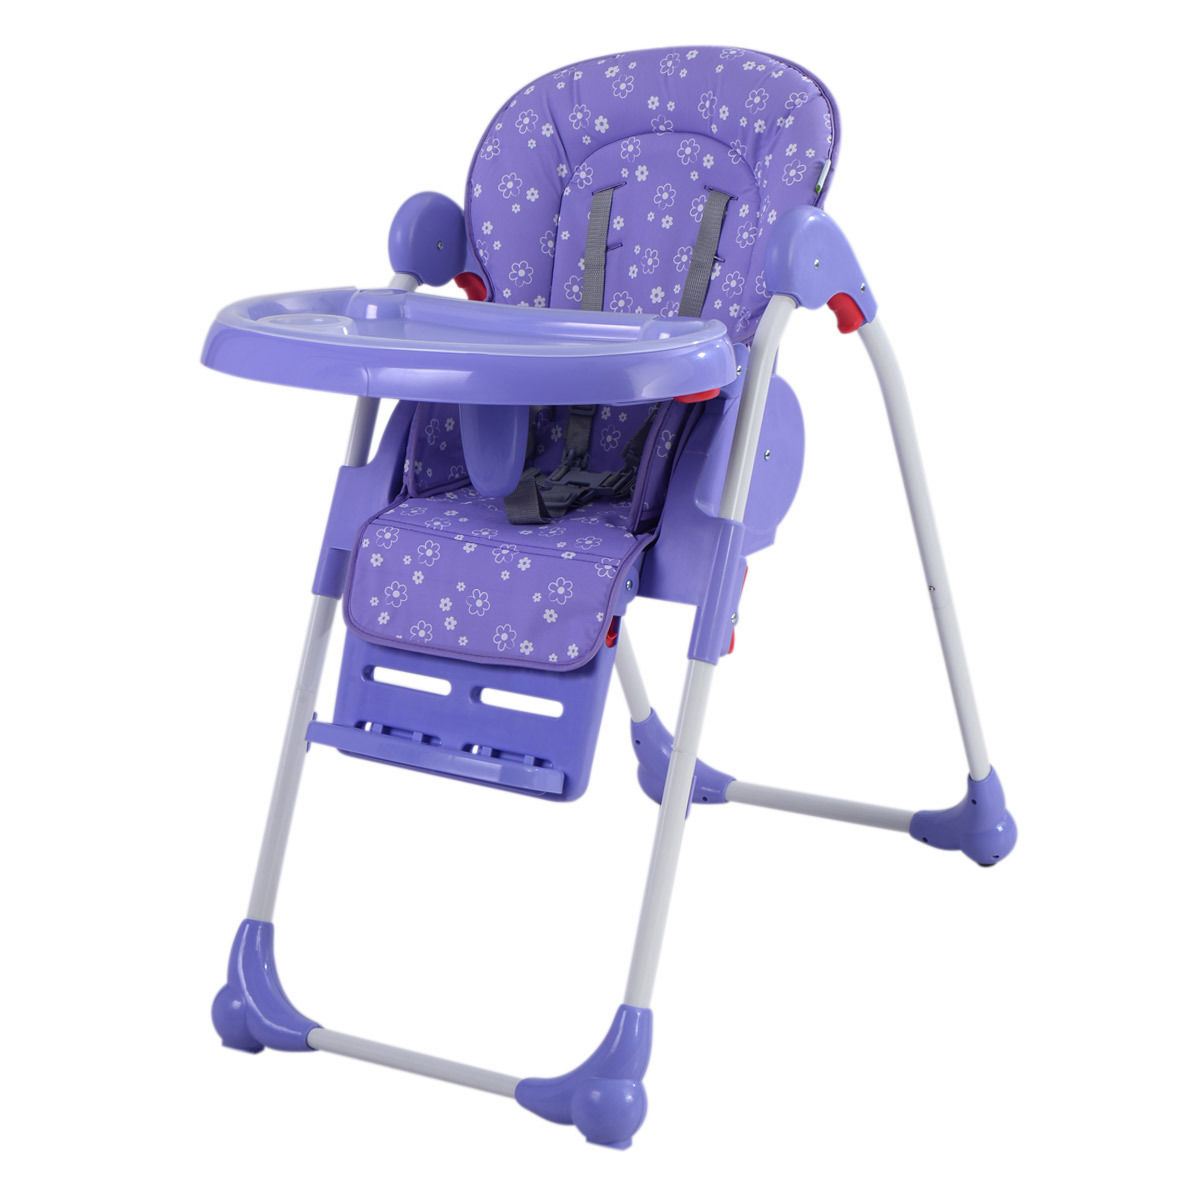 Goplus Adjustable Baby High Chair Infant Toddler Feeding Booster Seat Folding Purple